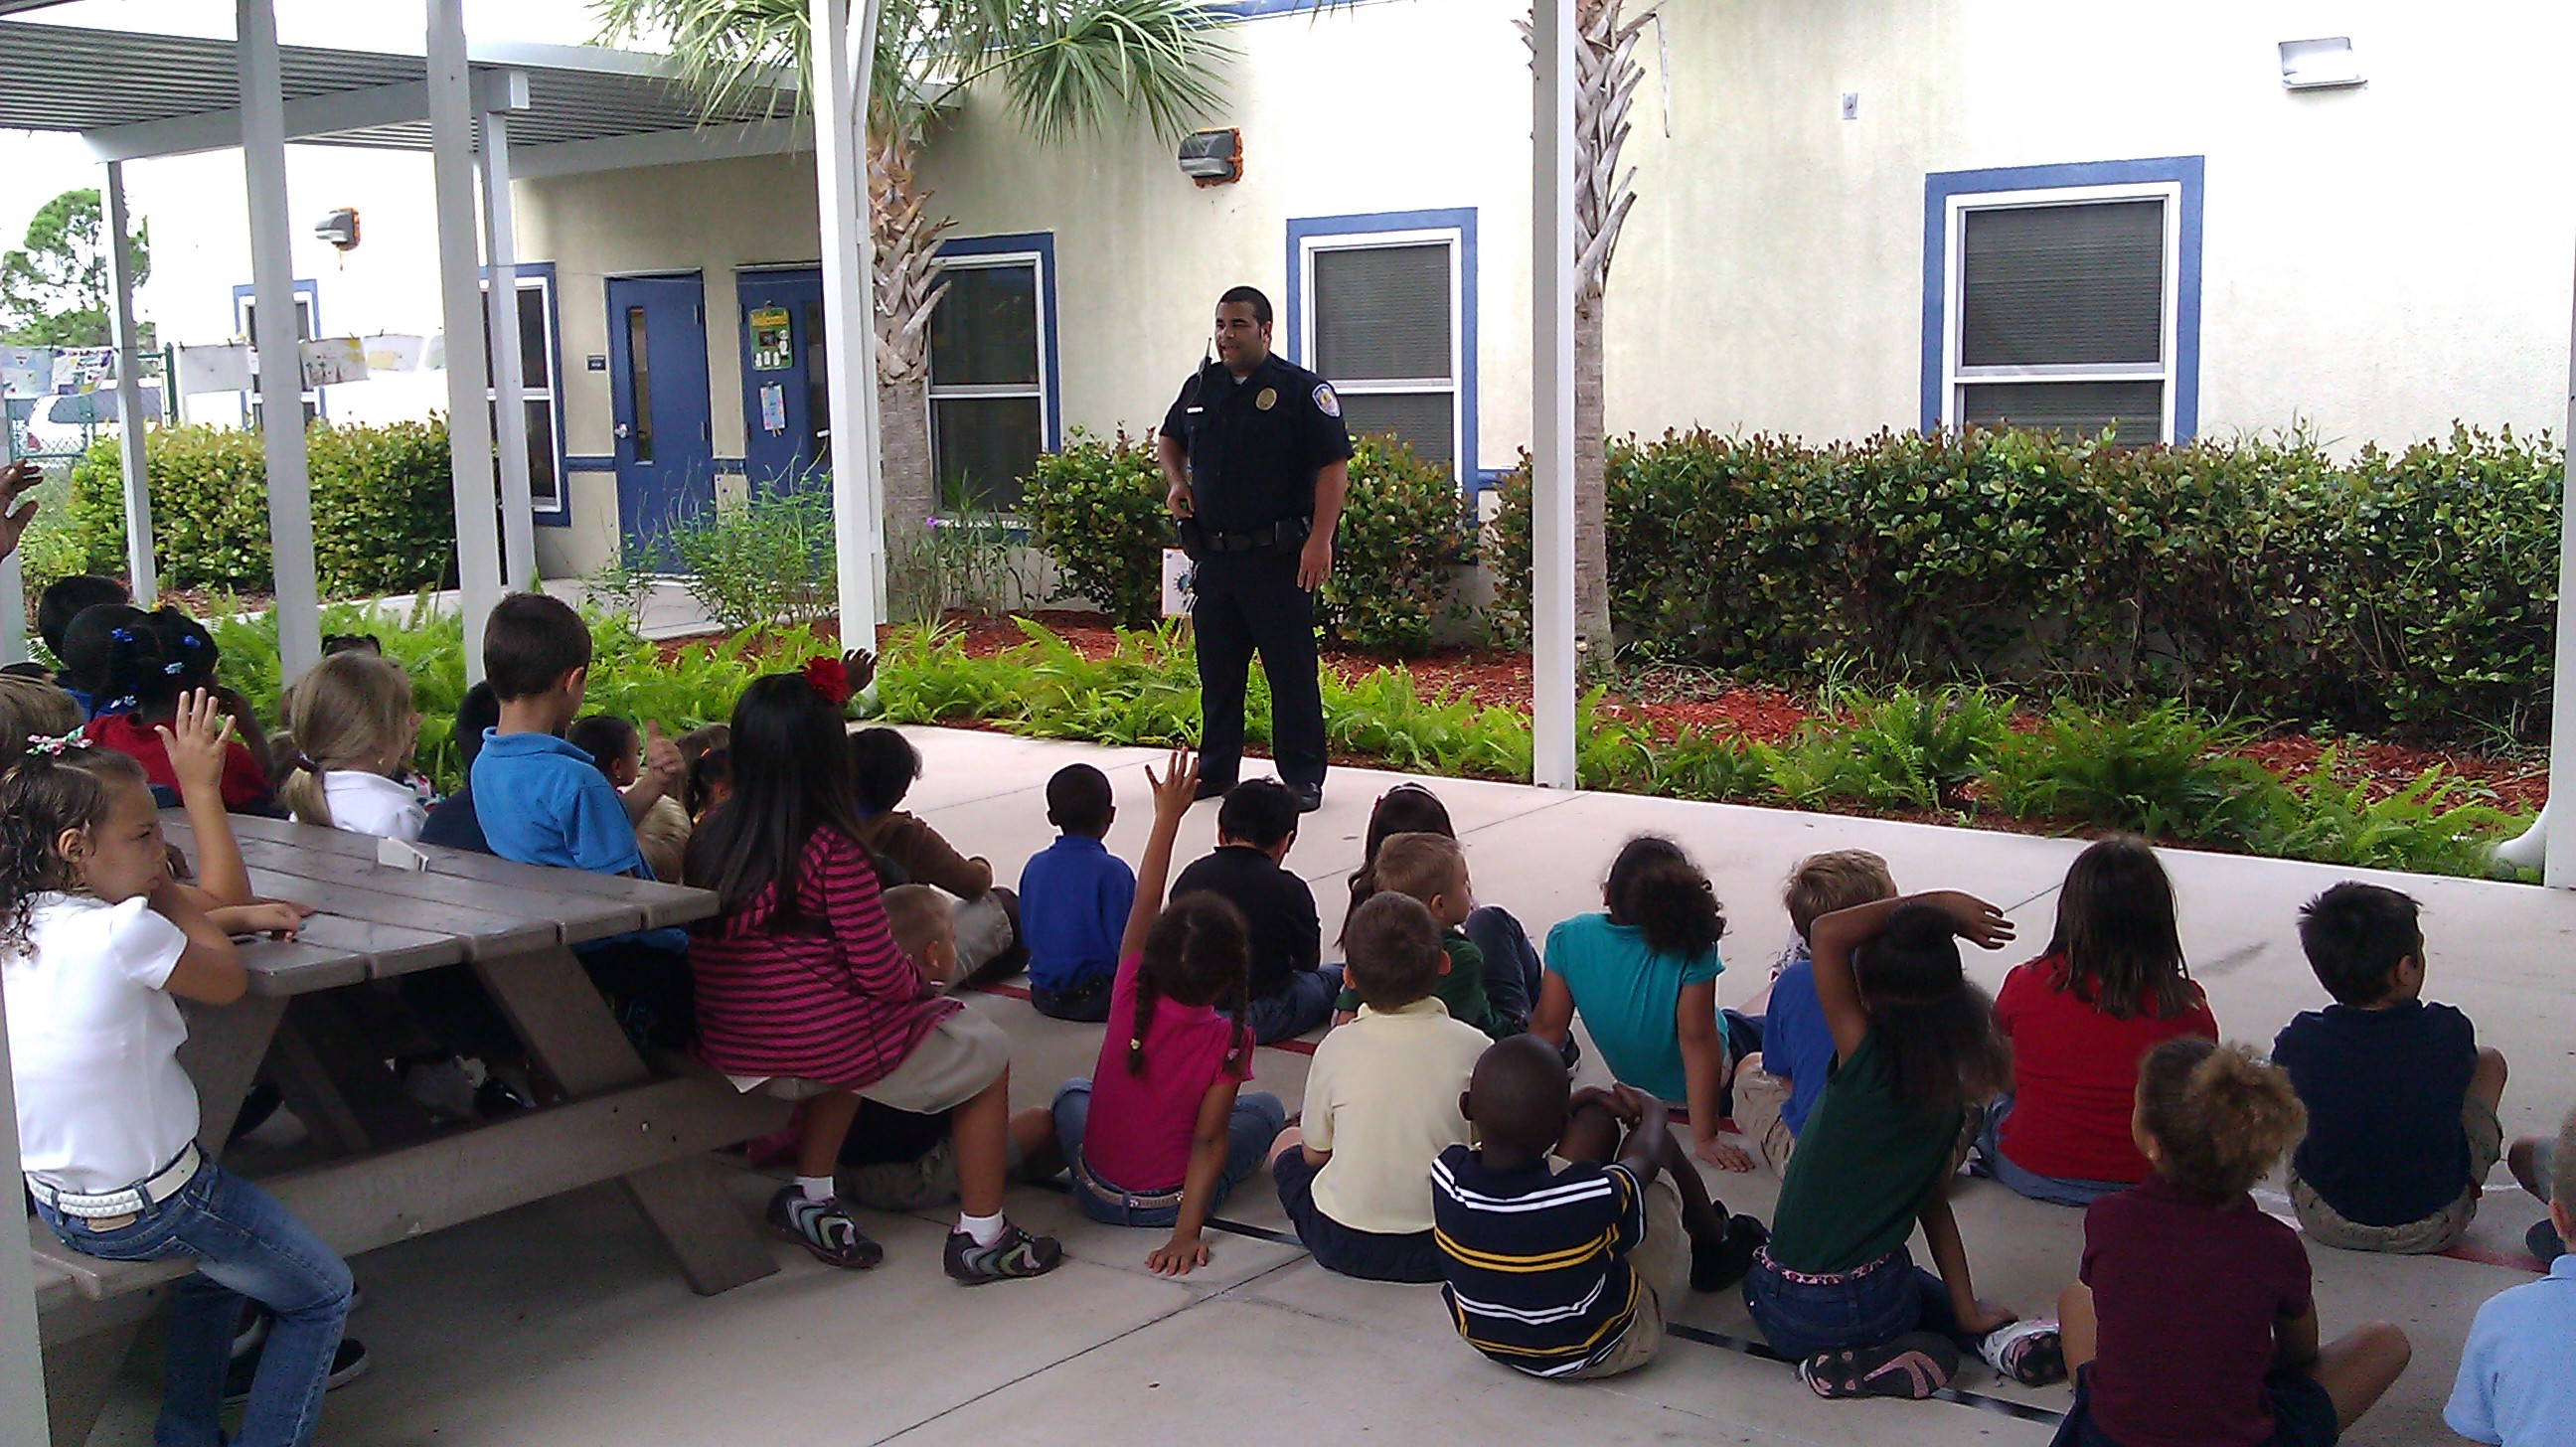 Northport first graders receive visit from community helper